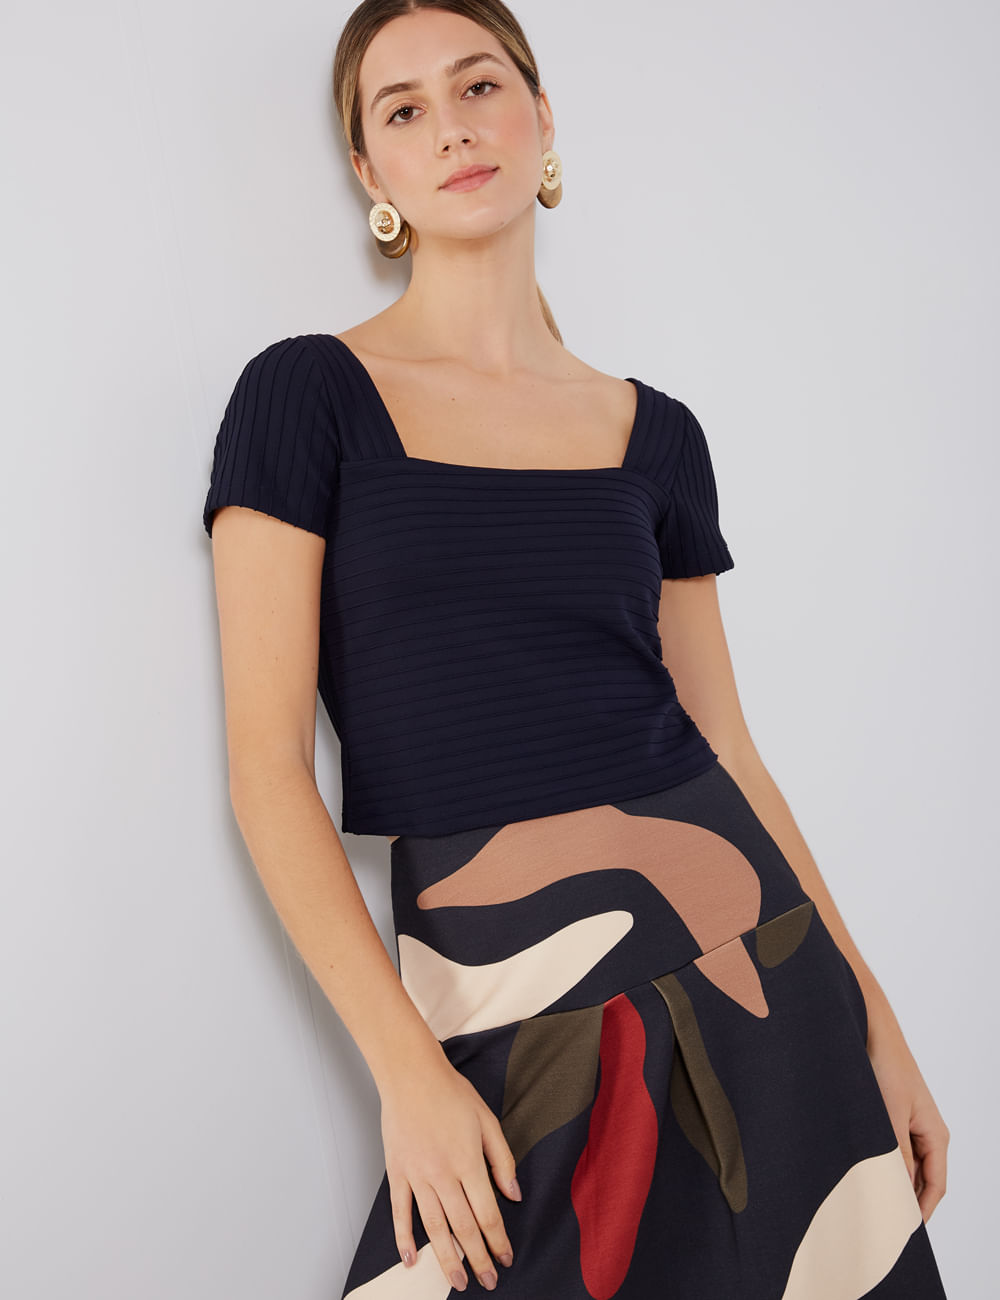 1502051_2125_1-BLUSA-CROPPED-DECOTE-CORACAO